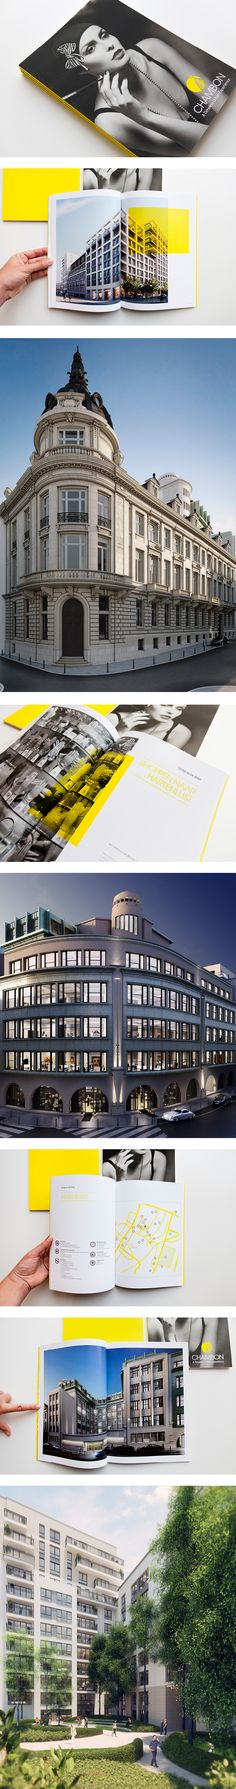 Concept, brochure and 3D visuals for Chambon, a prestigious residential and offices project in the heart of Brussels. ©2013 hooox - Real Estate Communication